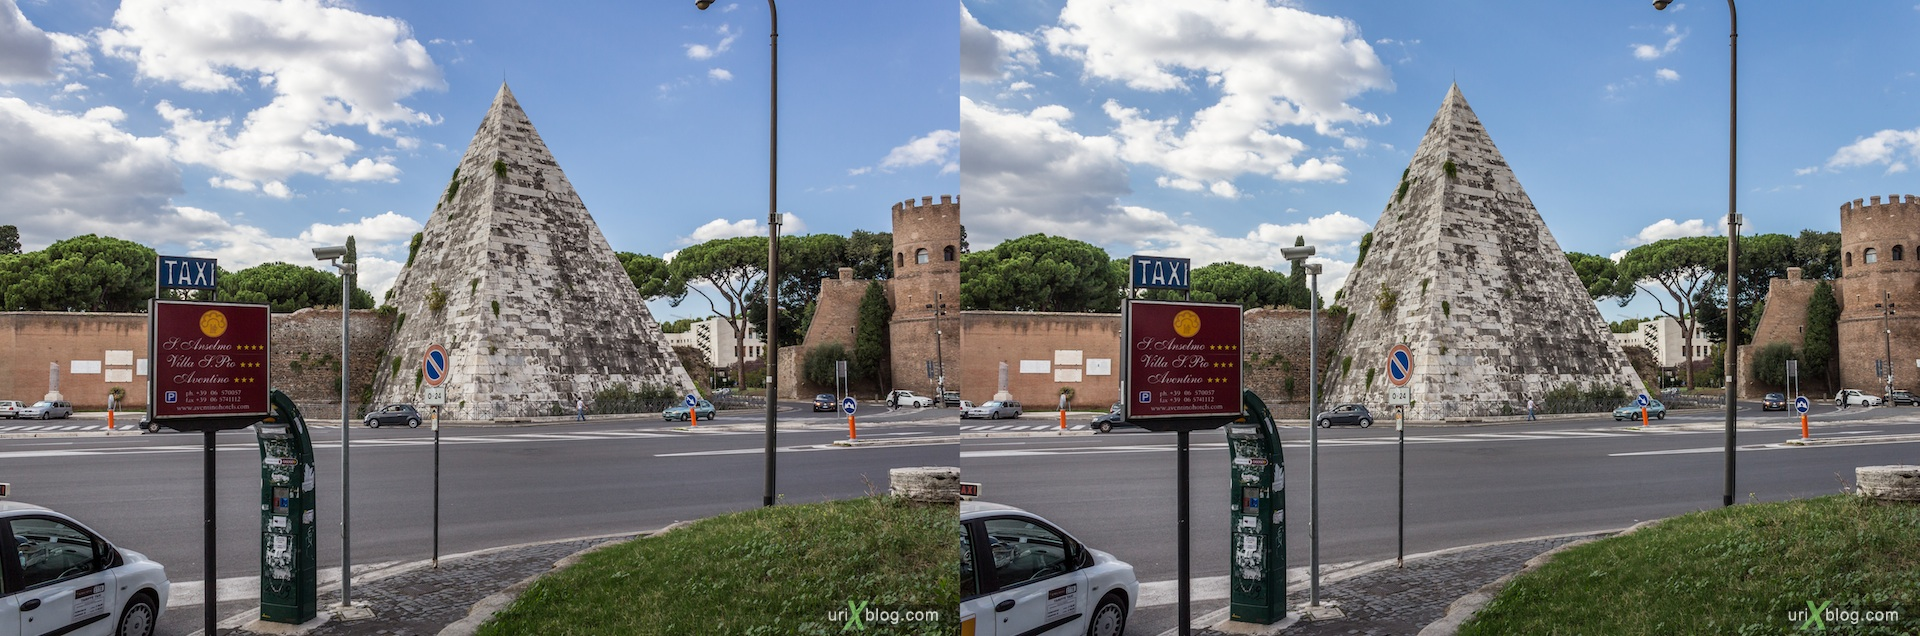 2012, Pyramid of Cestius, metro station, Rome, Italy, Europe, 3D, stereo pair, cross-eyed, crossview, cross view stereo pair